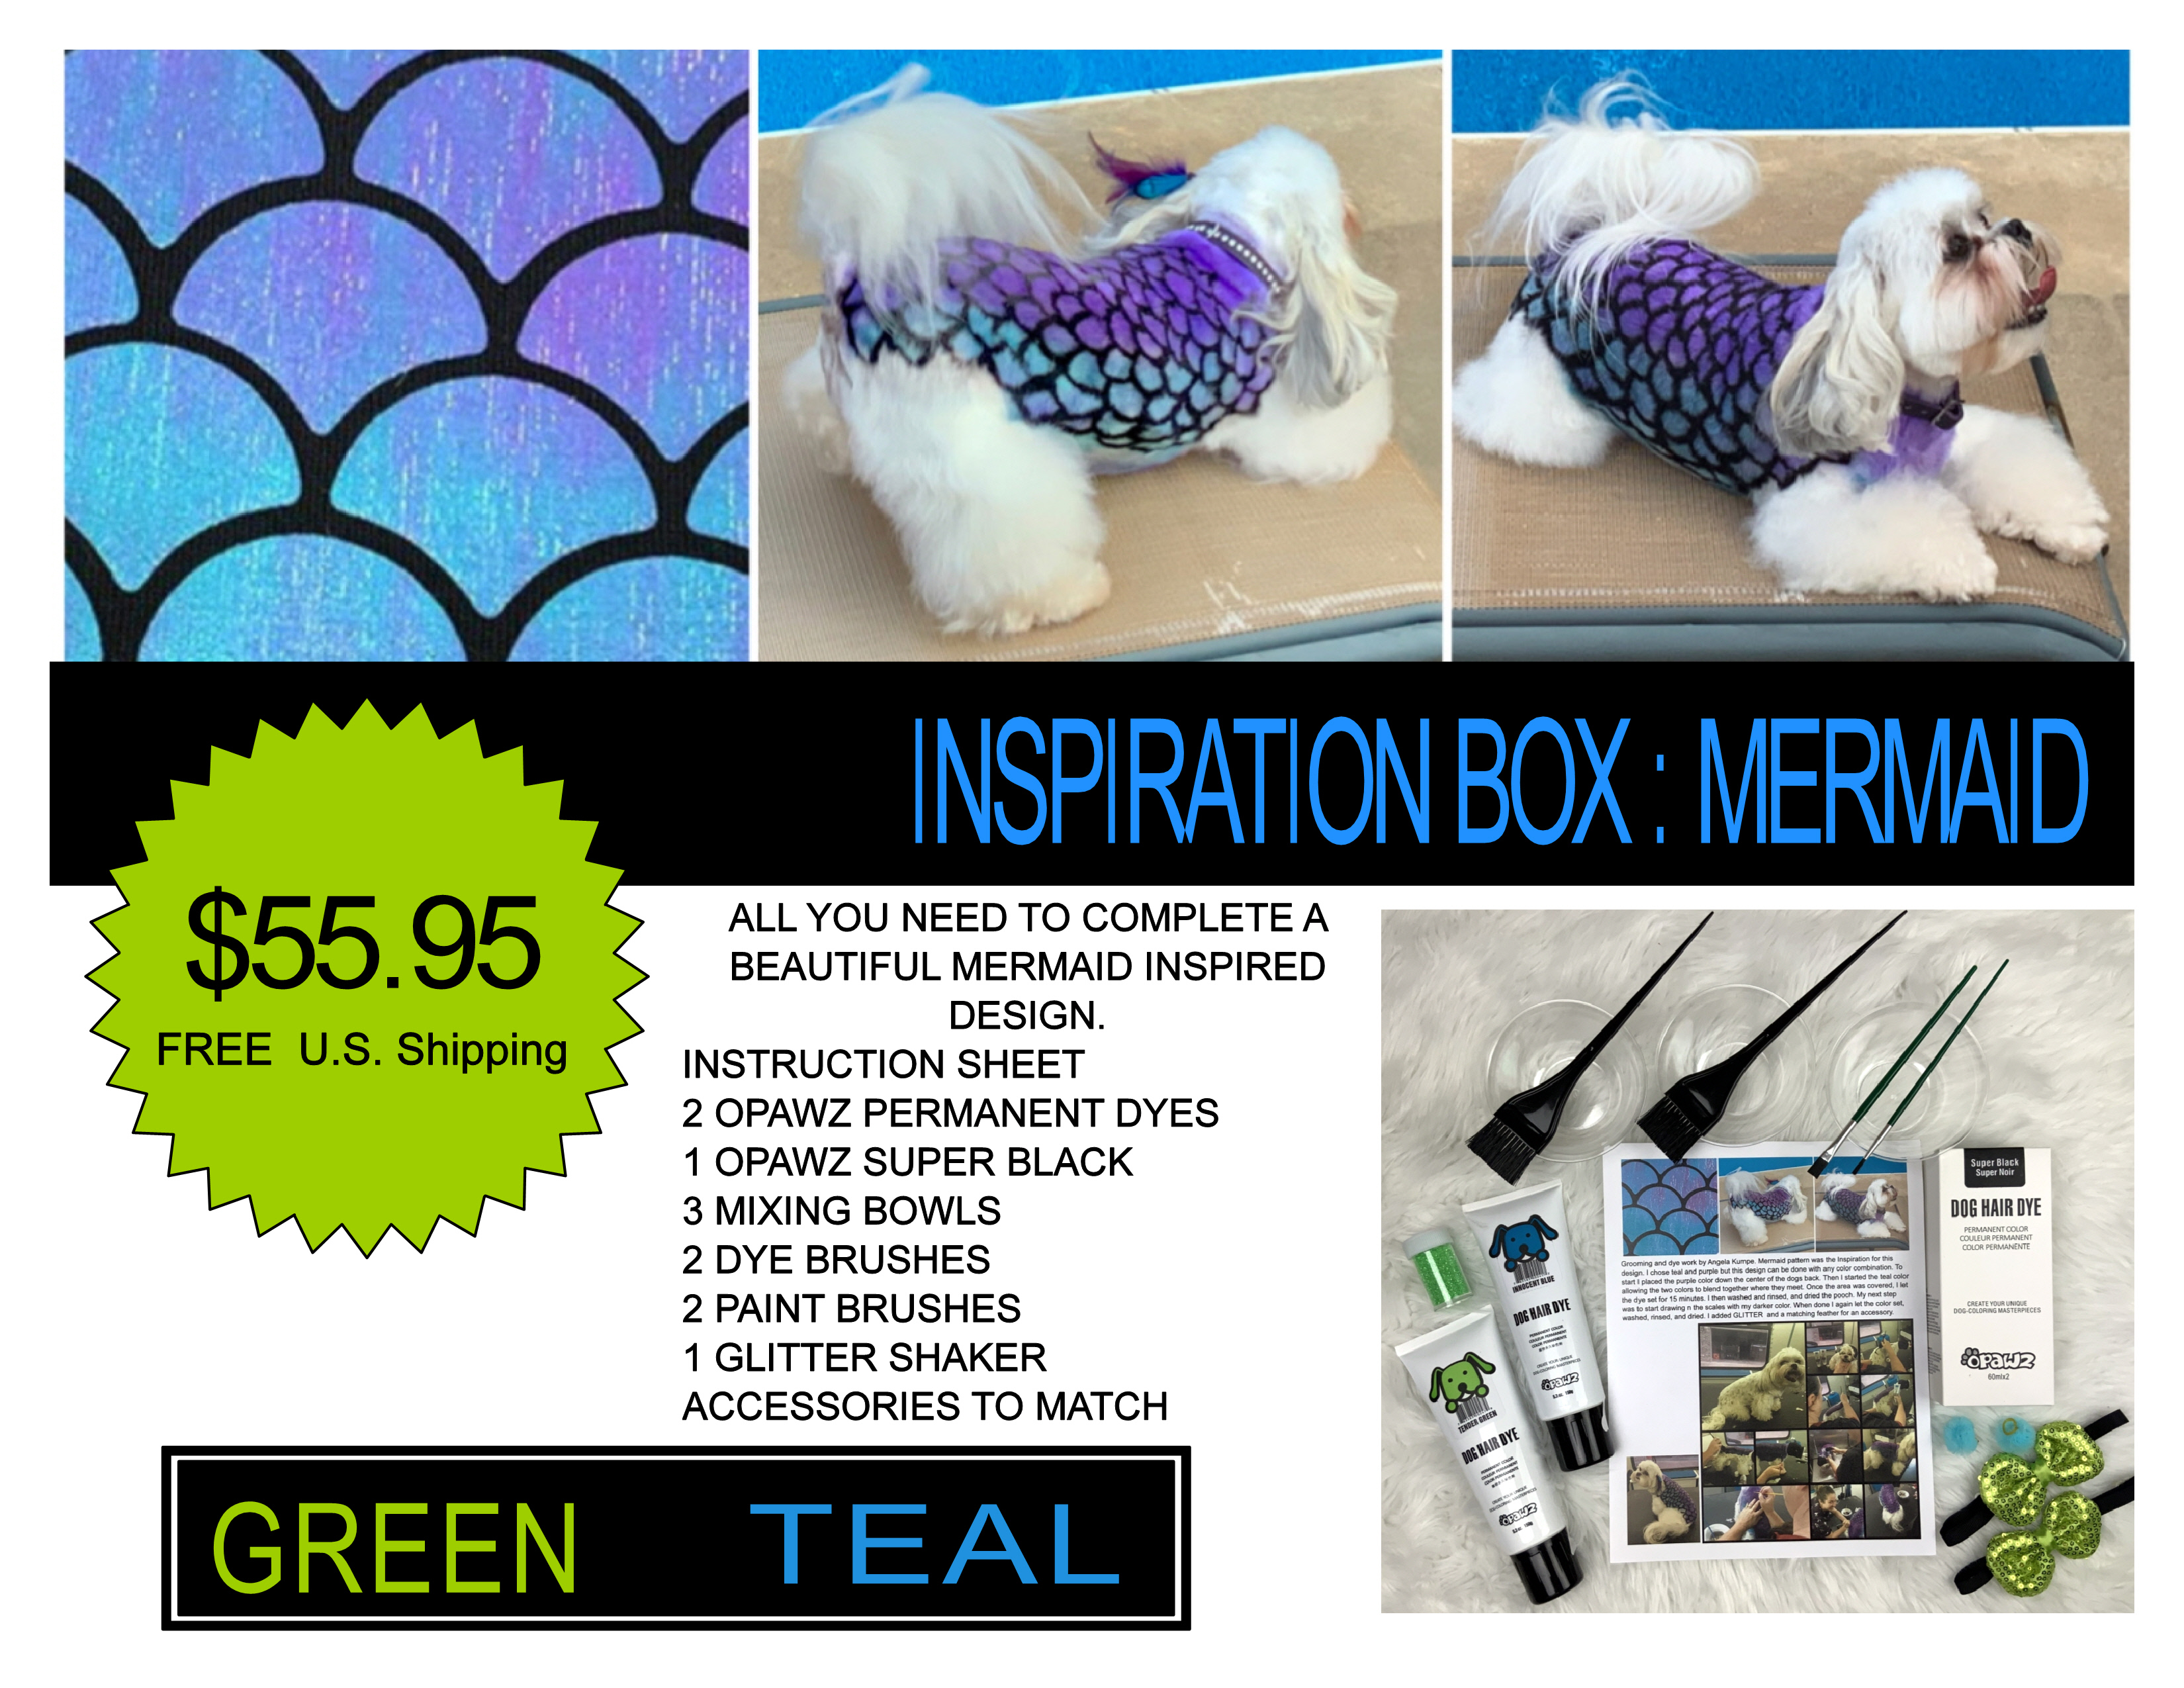 MERMAID inspiration box GREEN TEAL